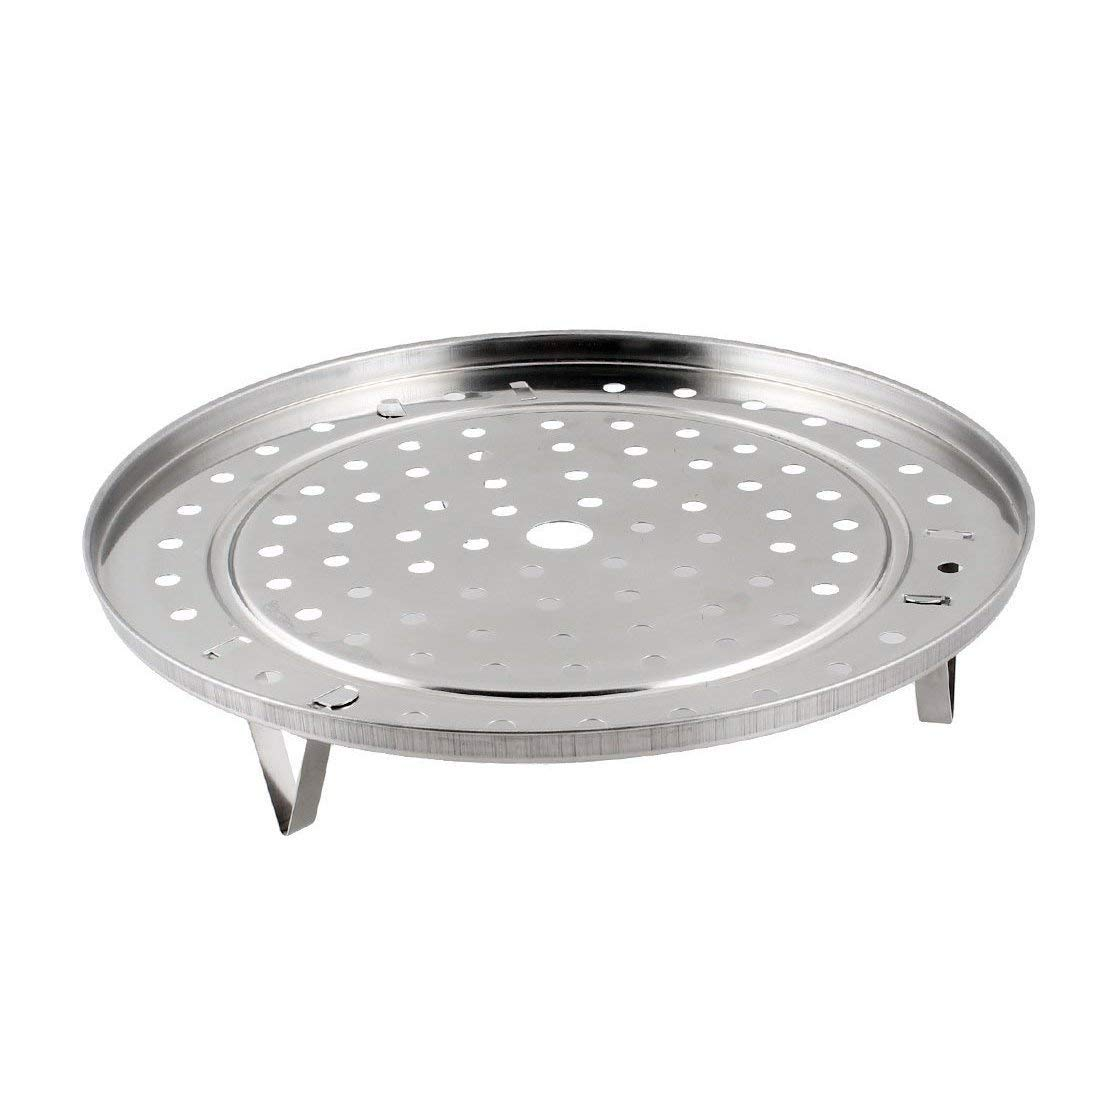 LUQUAN Round Stainless Steel Steaming Rack W Stand 25.5Cm Diameter